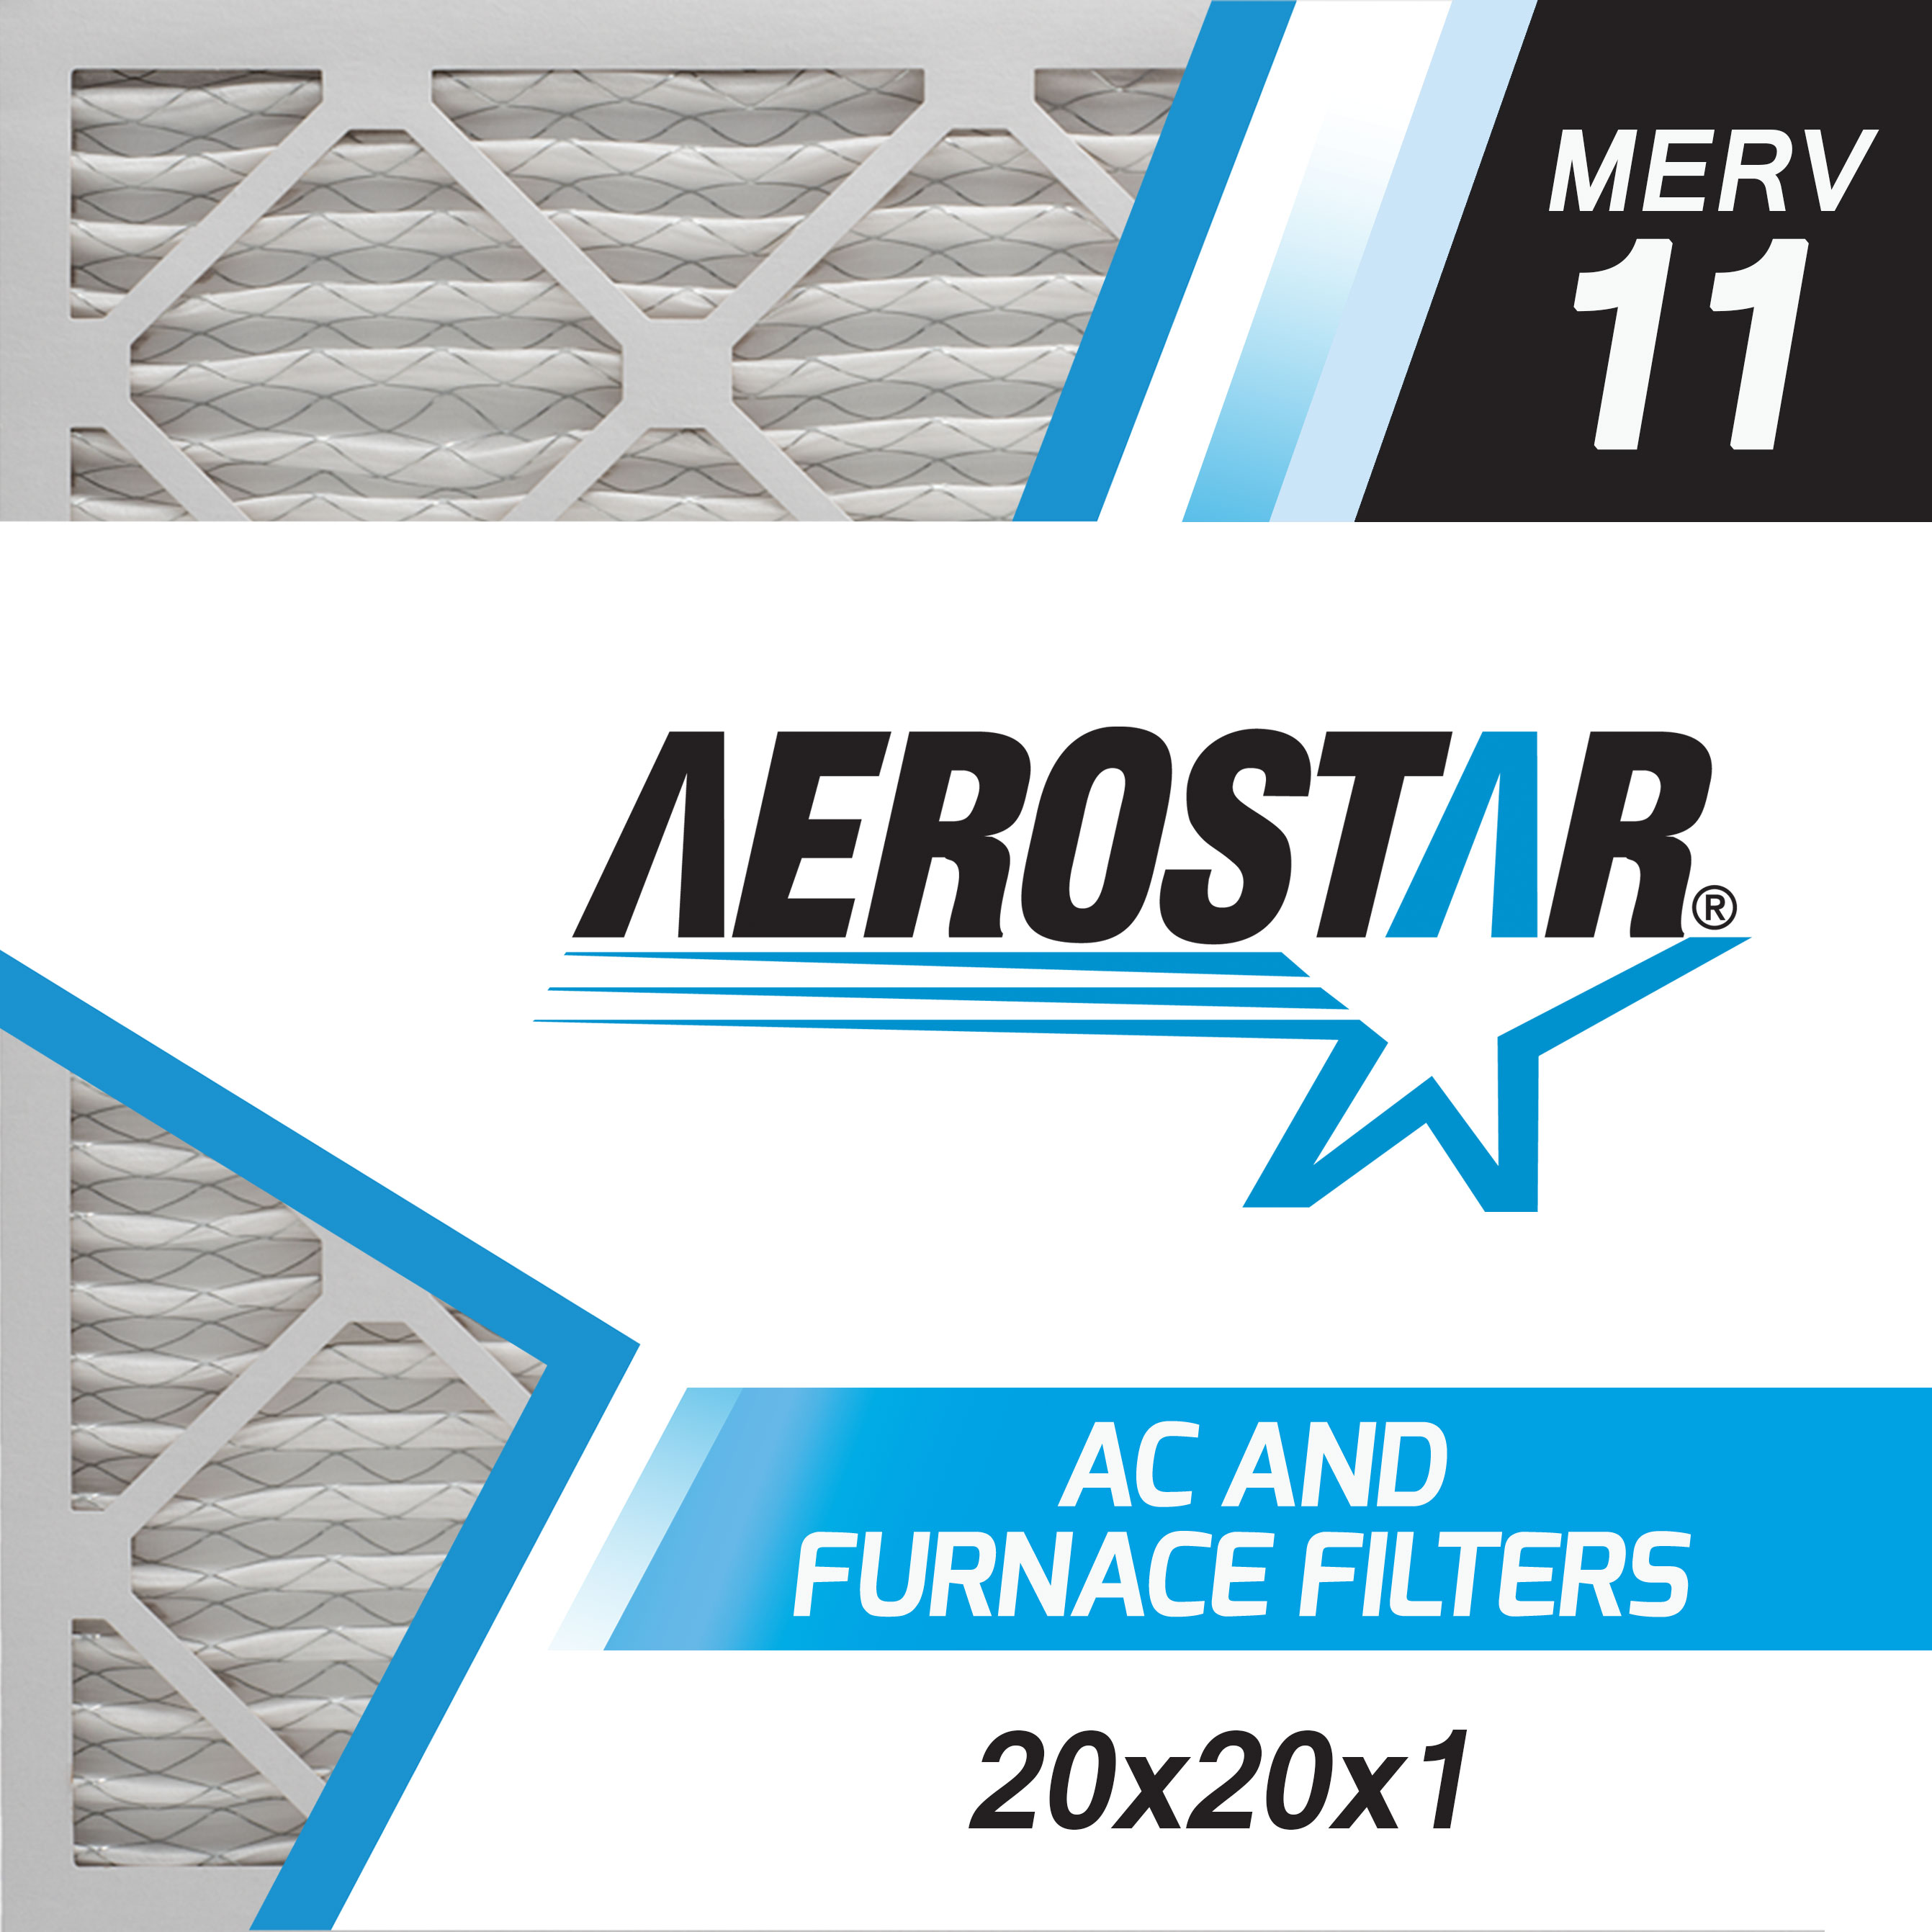 20x20x1 AC and Furnace Air Filter by Aerostar - MERV 11, Box of 6